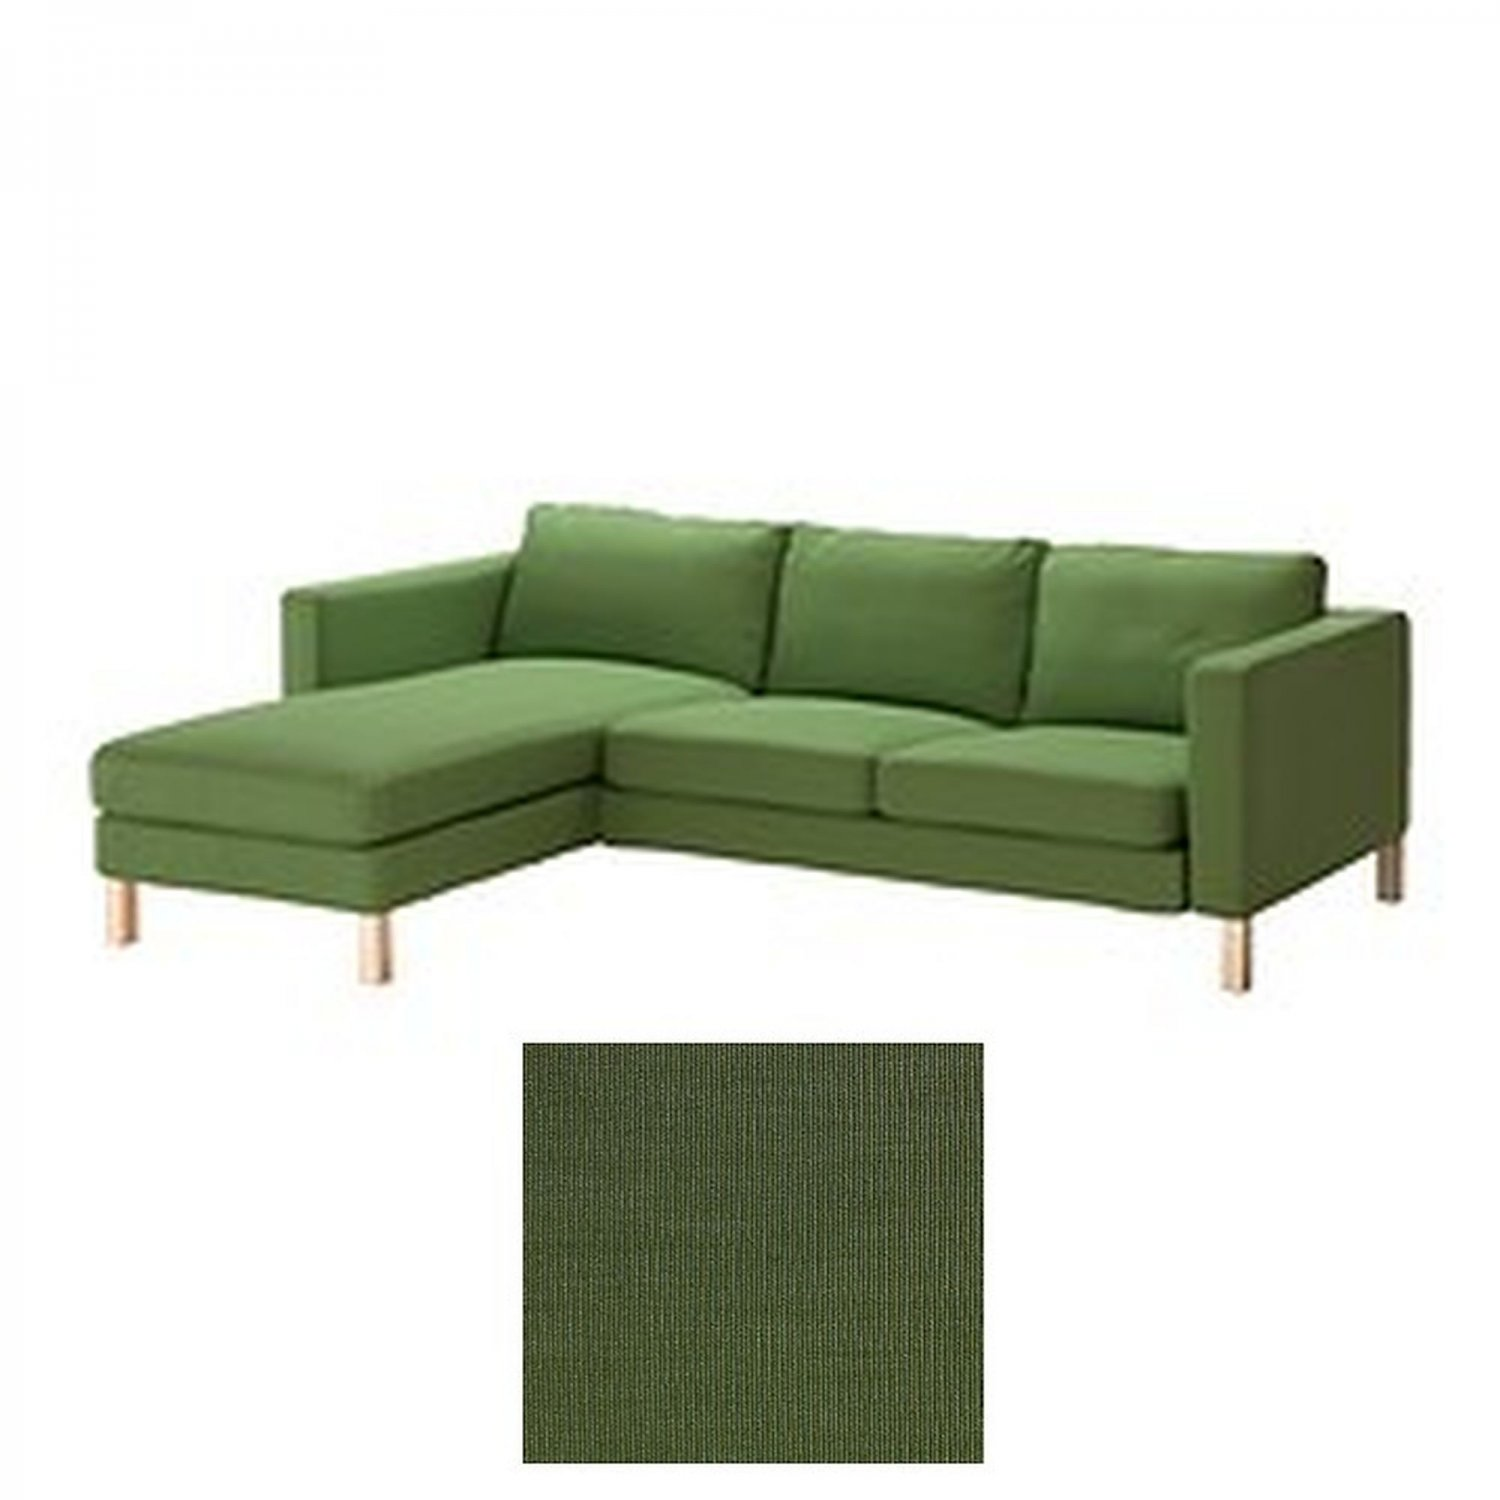 IKEA KARLSTAD 2 Seat Loveseat Sofa and Chaise SLIPCOVER Cover